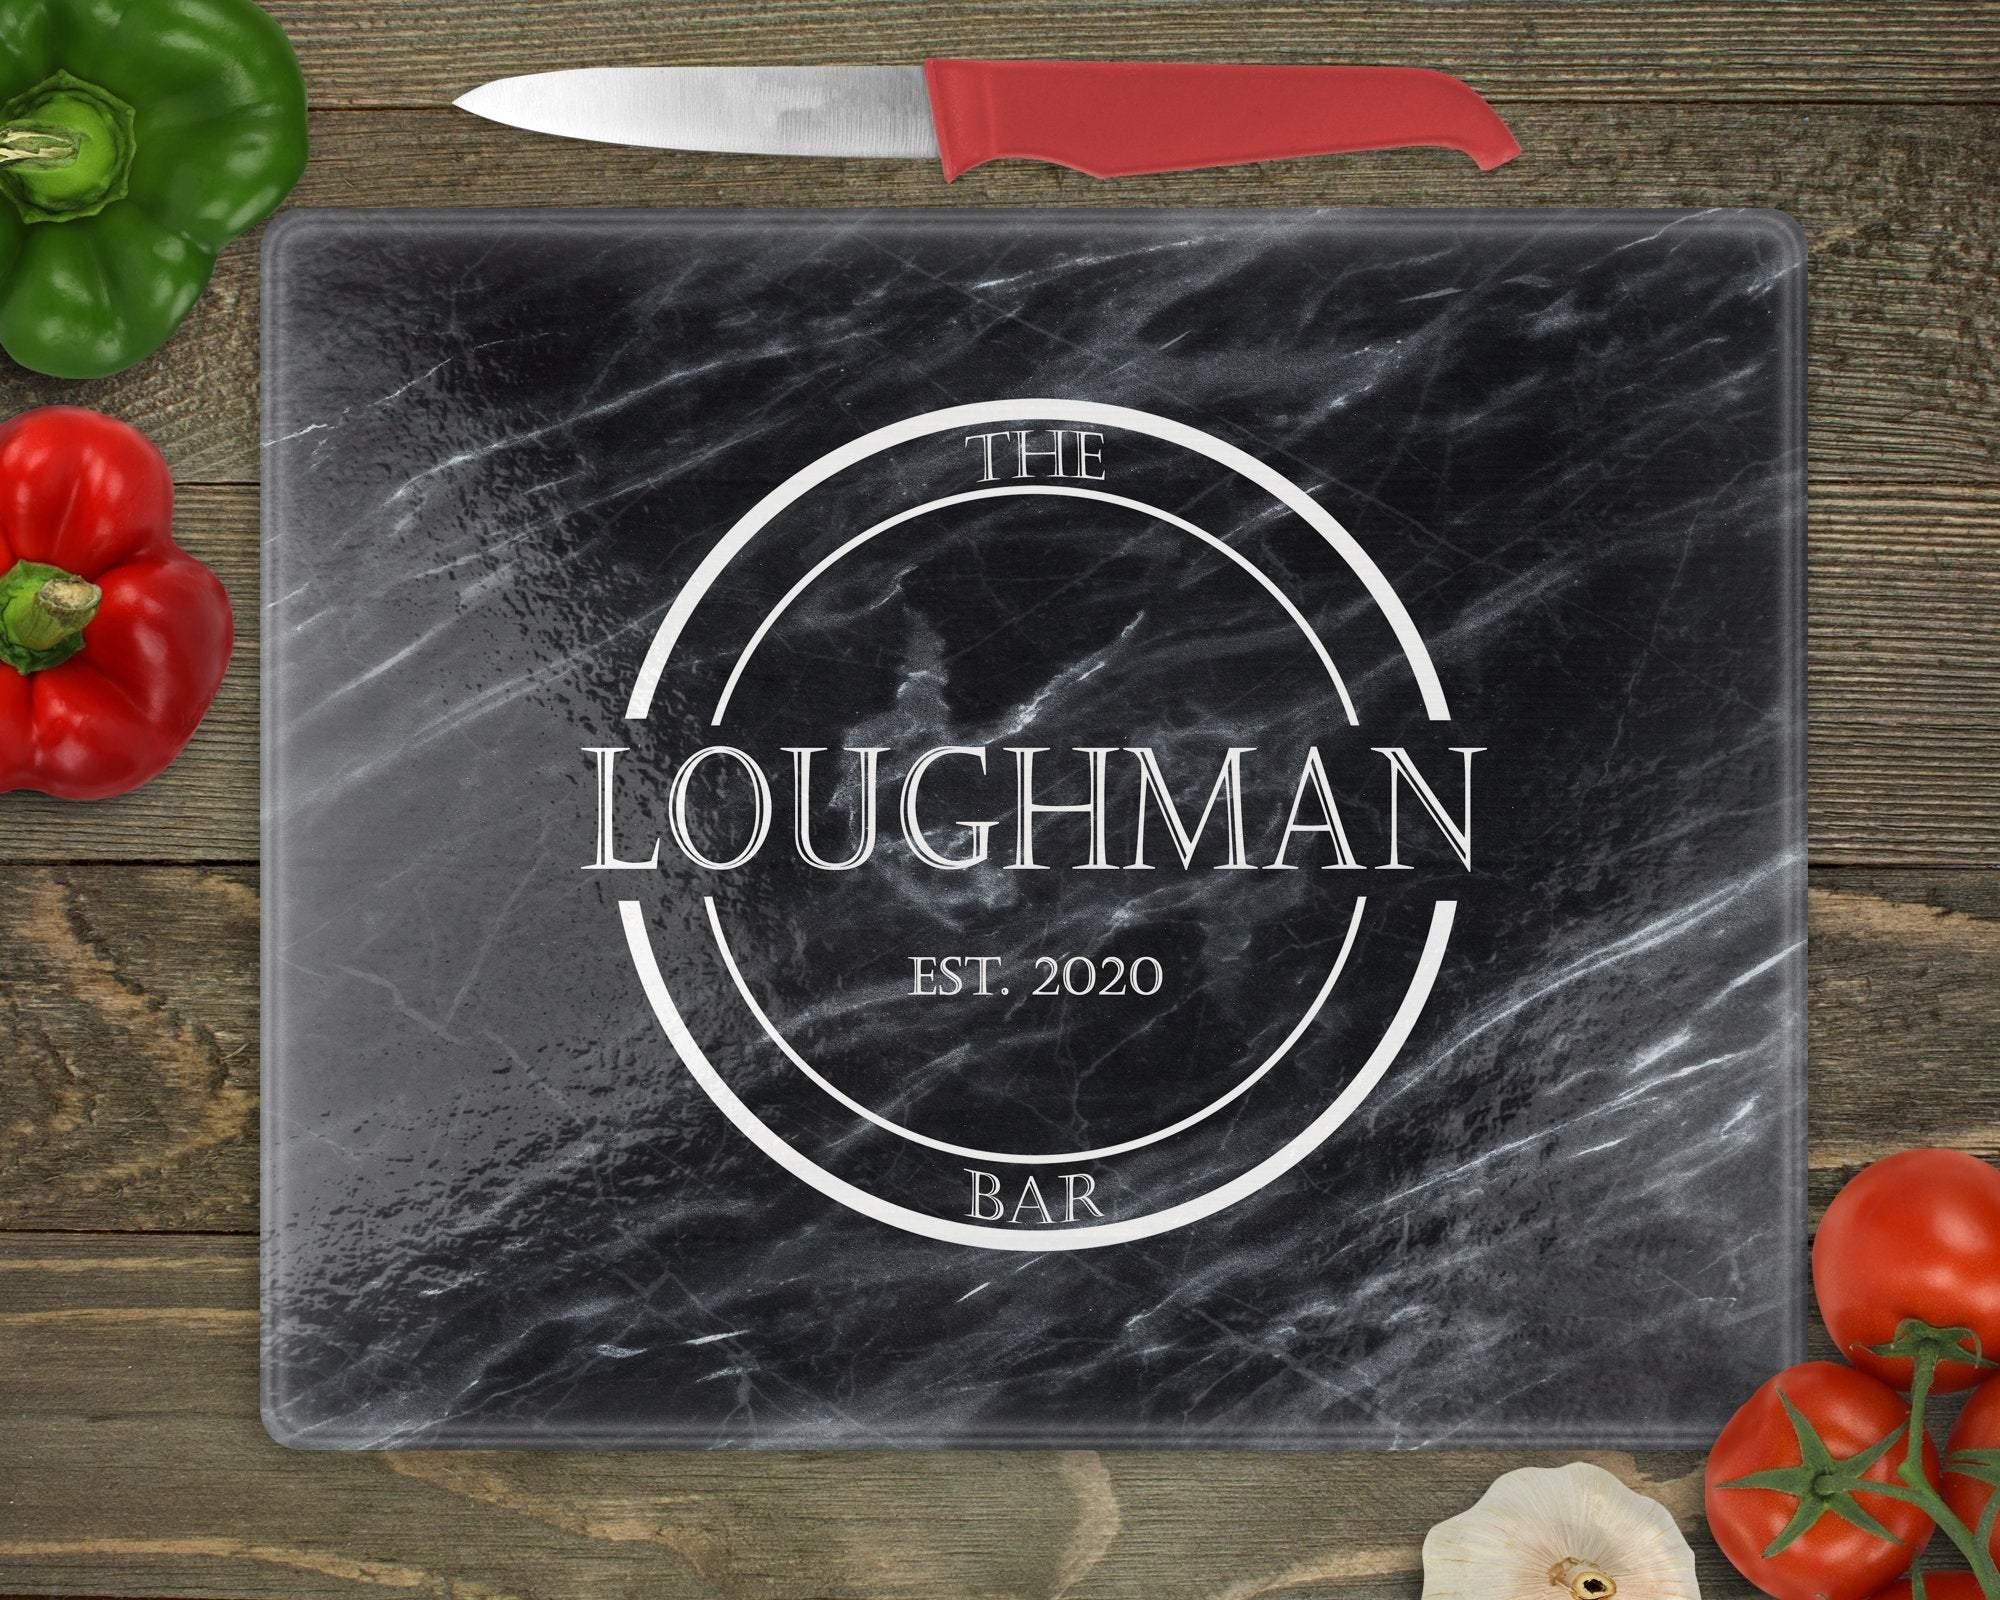 Cutting Boards | Personalized Cutting Board | Custom Glass Cutting Board | Black Marble Bar | This and That Solutions | Personalized Gifts | Custom Home Décor